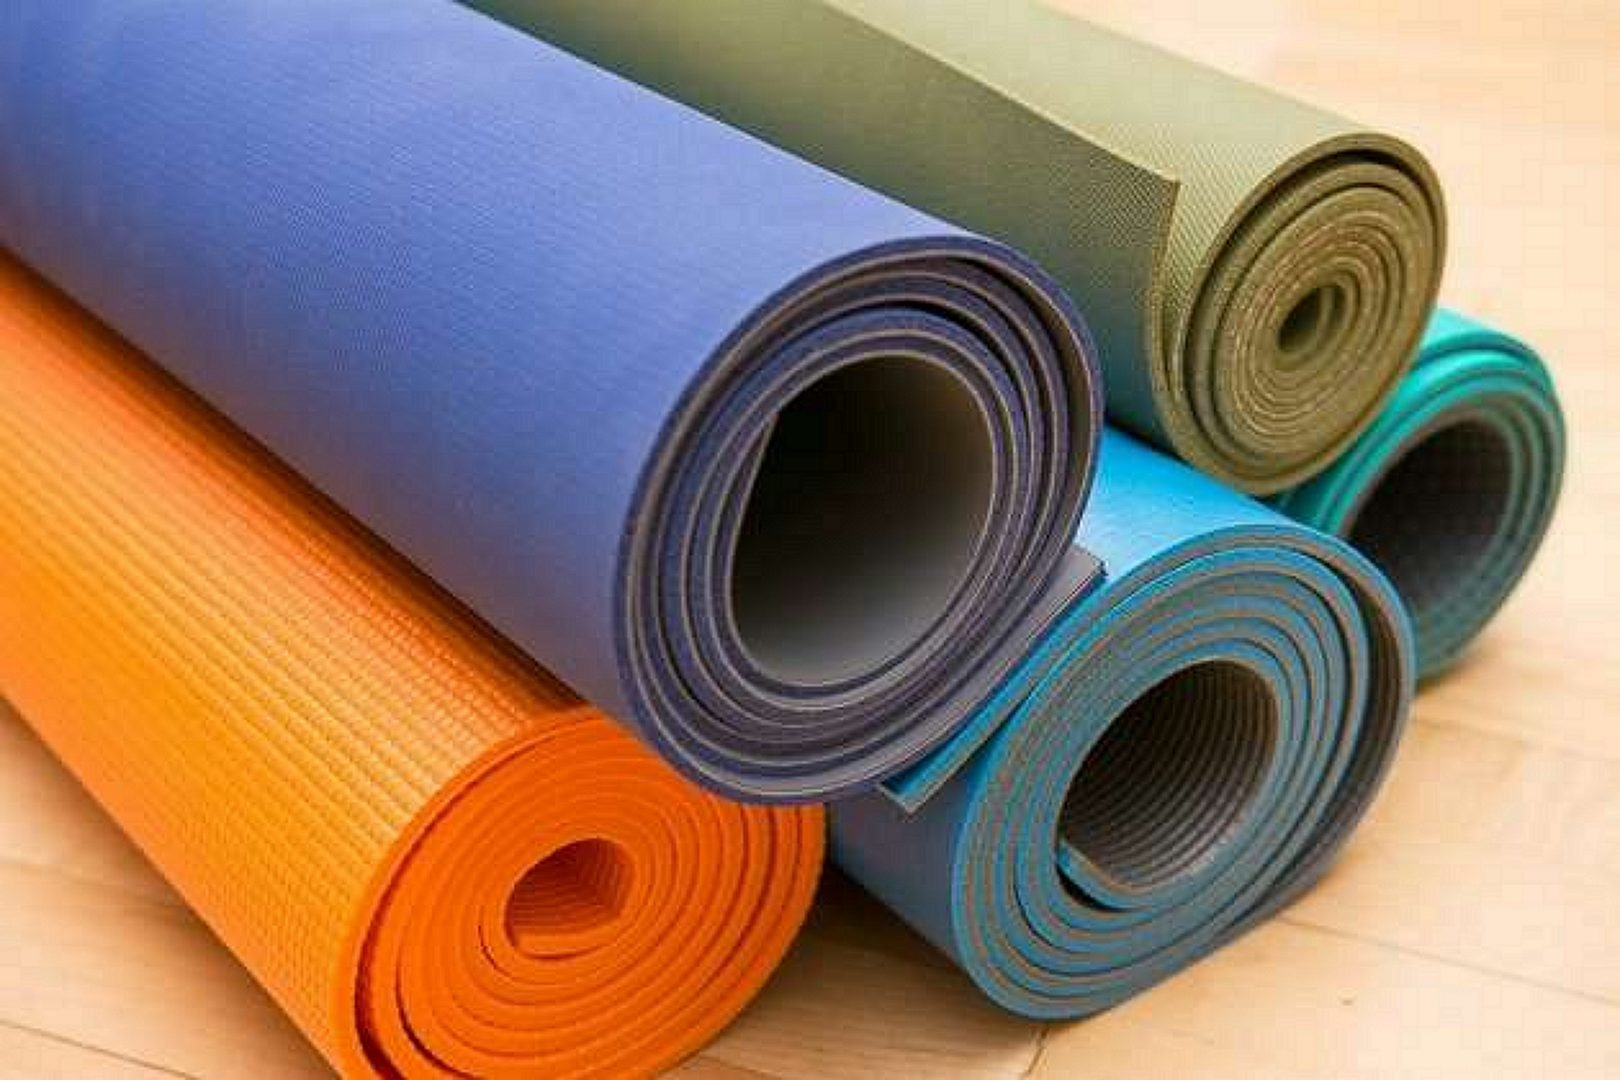 Yoga mat collection